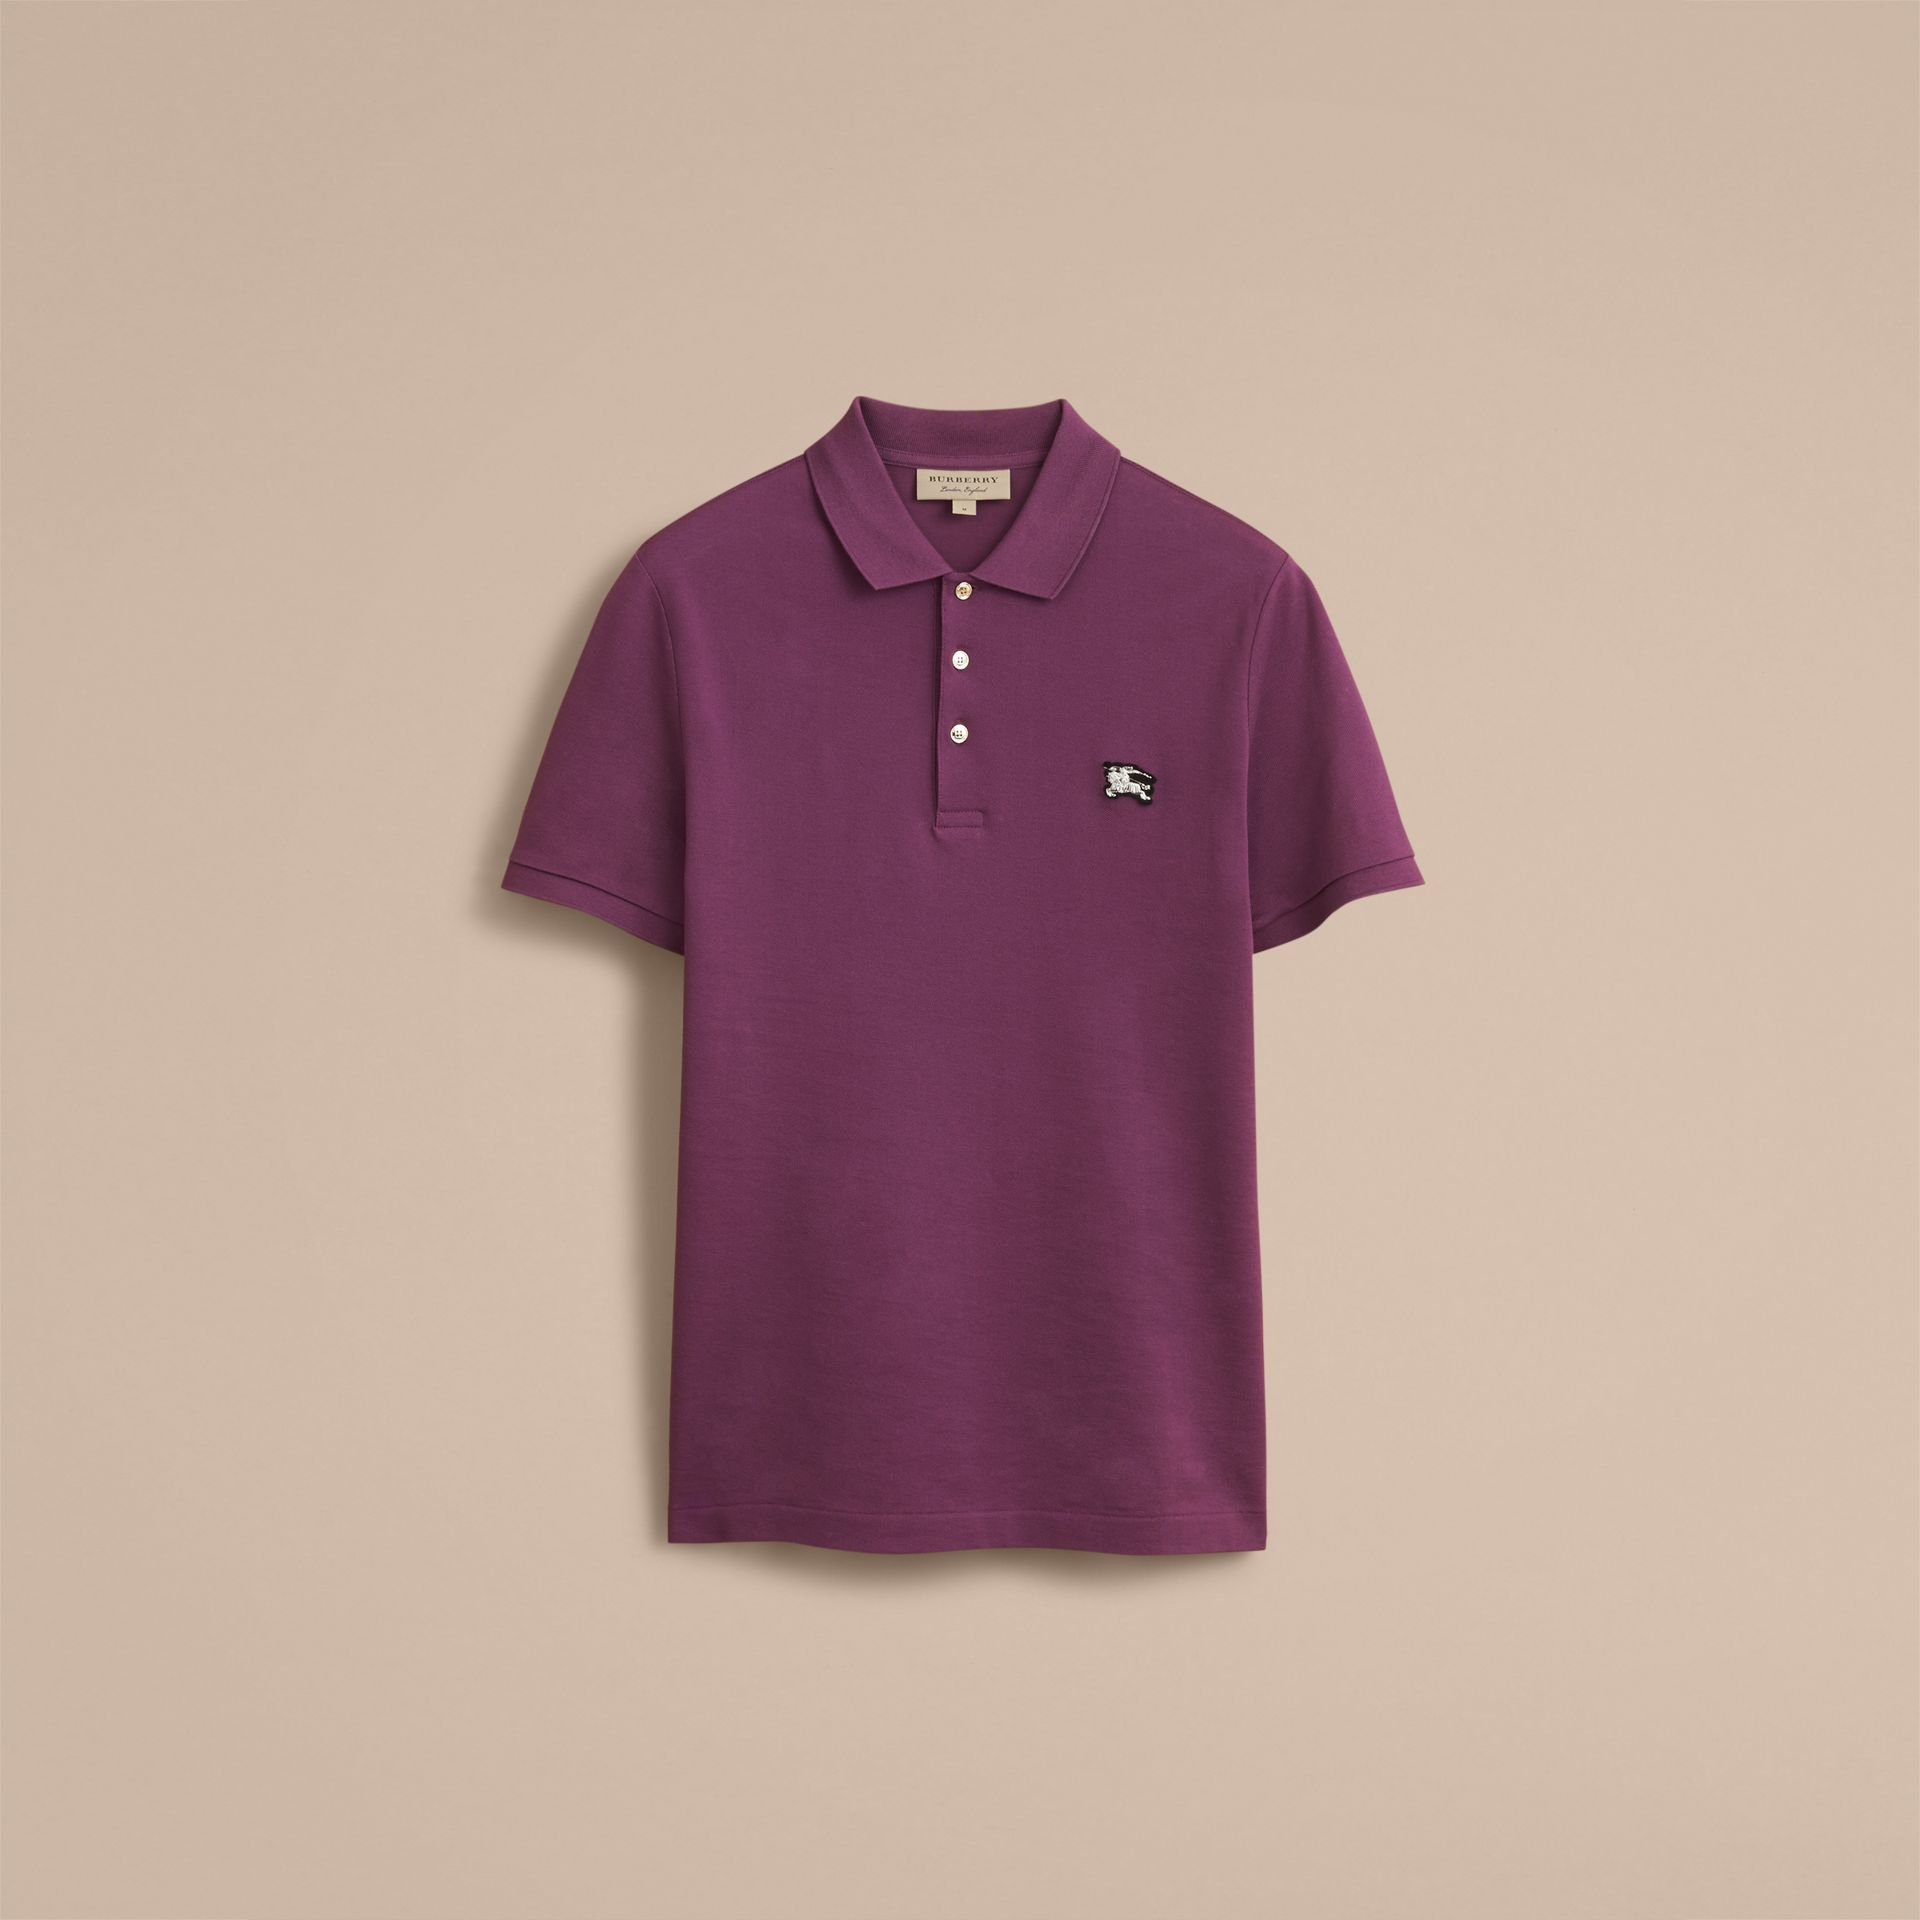 Cotton Piqué Polo Shirt in Heather - Men | Burberry - gallery image 4